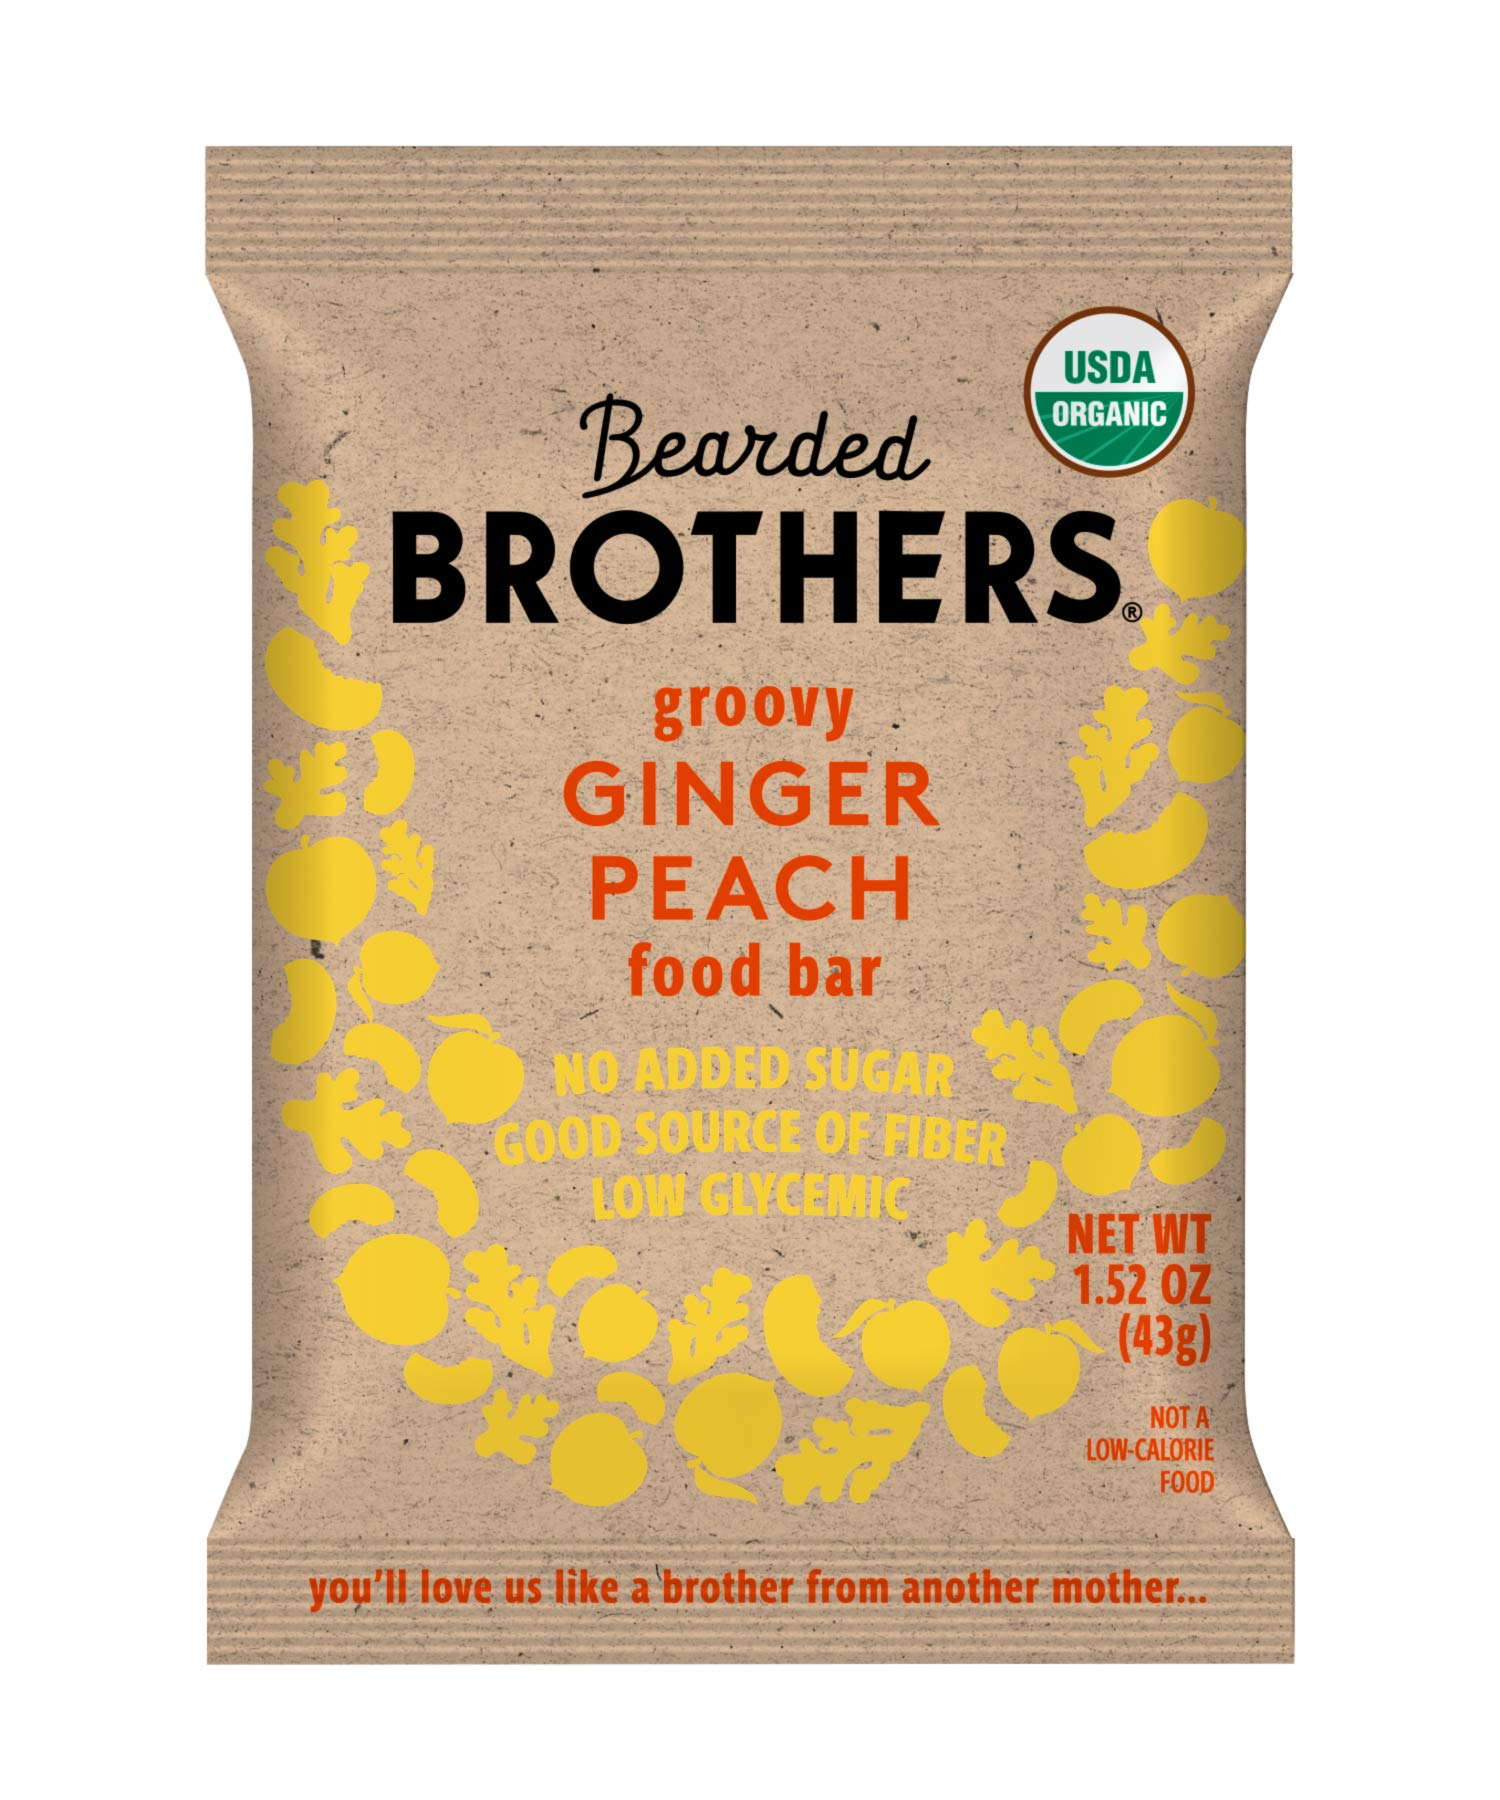 Bearded Brothers Vegan Organic Energy Bar   Gluten Free, Paleo and Whole 30   Soy Free, Non GMO, Low Glycemic, Packed with Protein, Fiber + Whole Foods   Ginger Peach   12 Pack